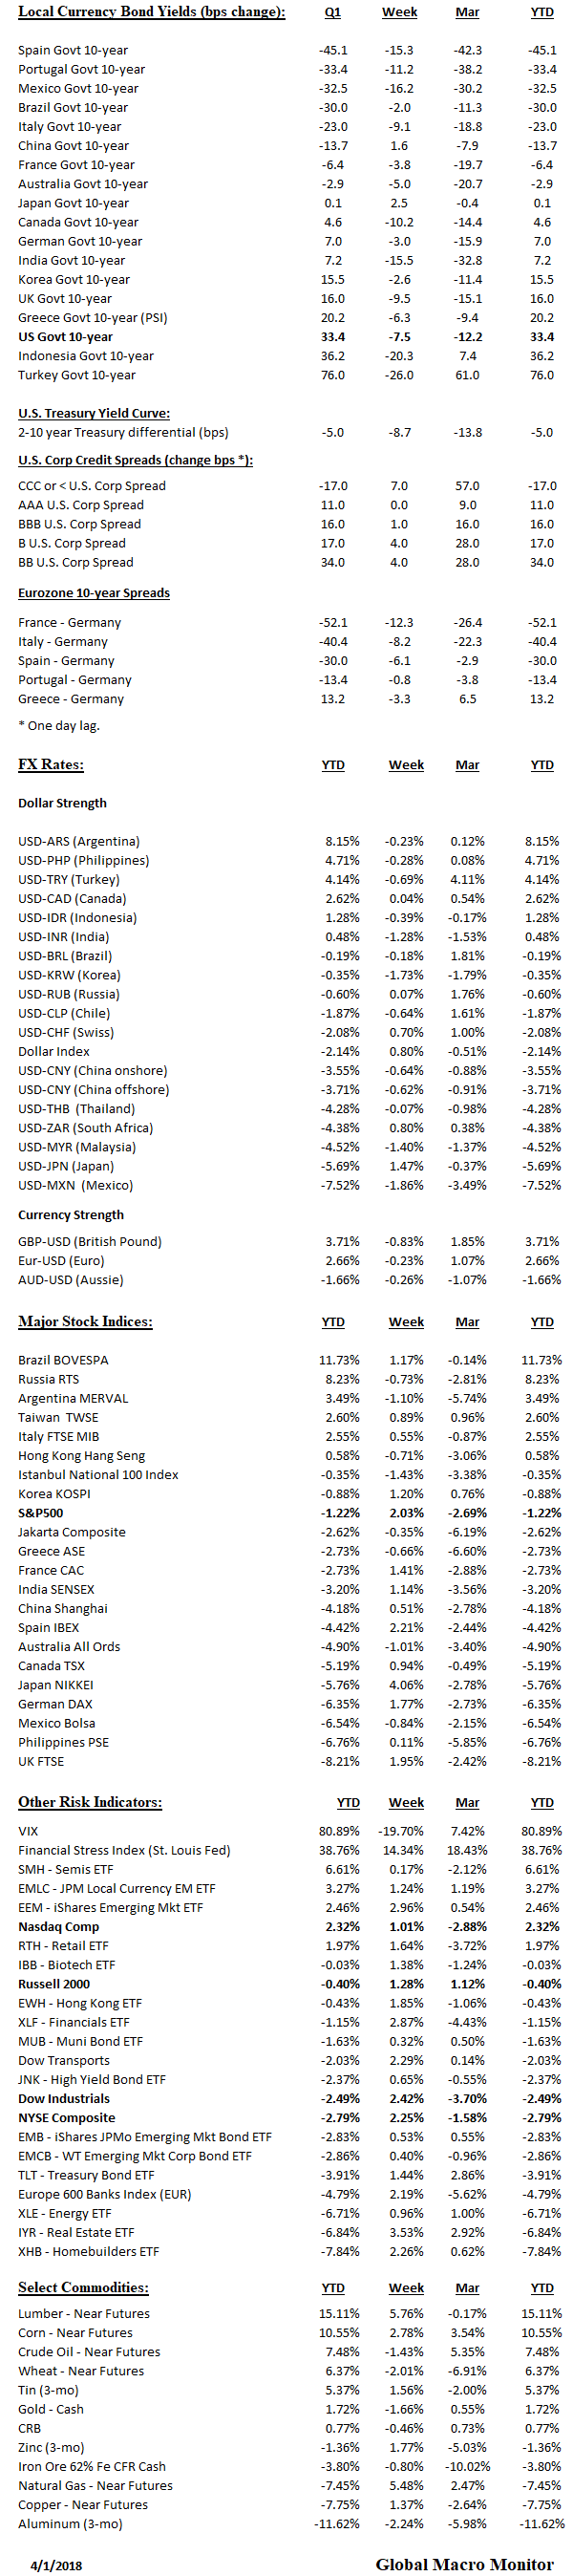 Weekly_Table